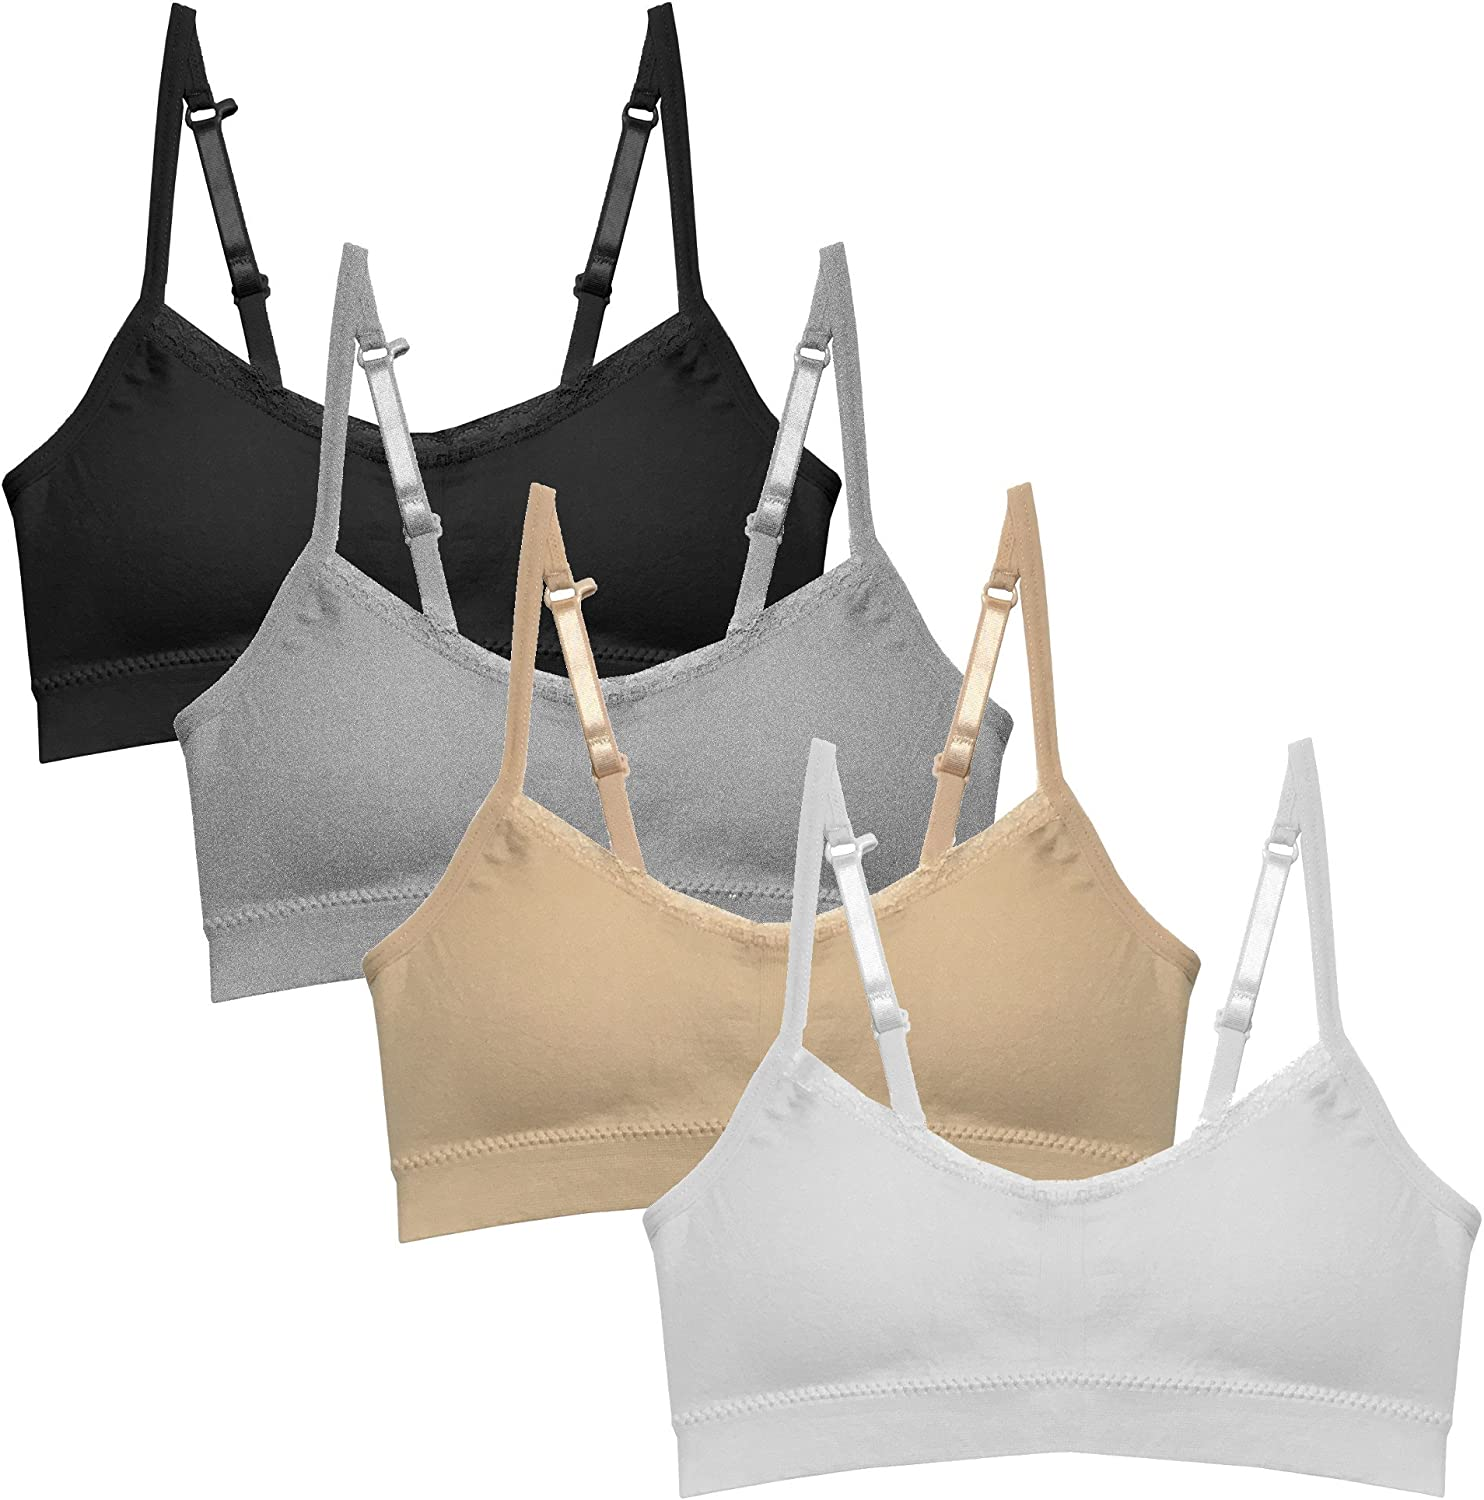 Popular Girl's Seamless Super Special service SALE held Cami Bra Value Padding Removable - with